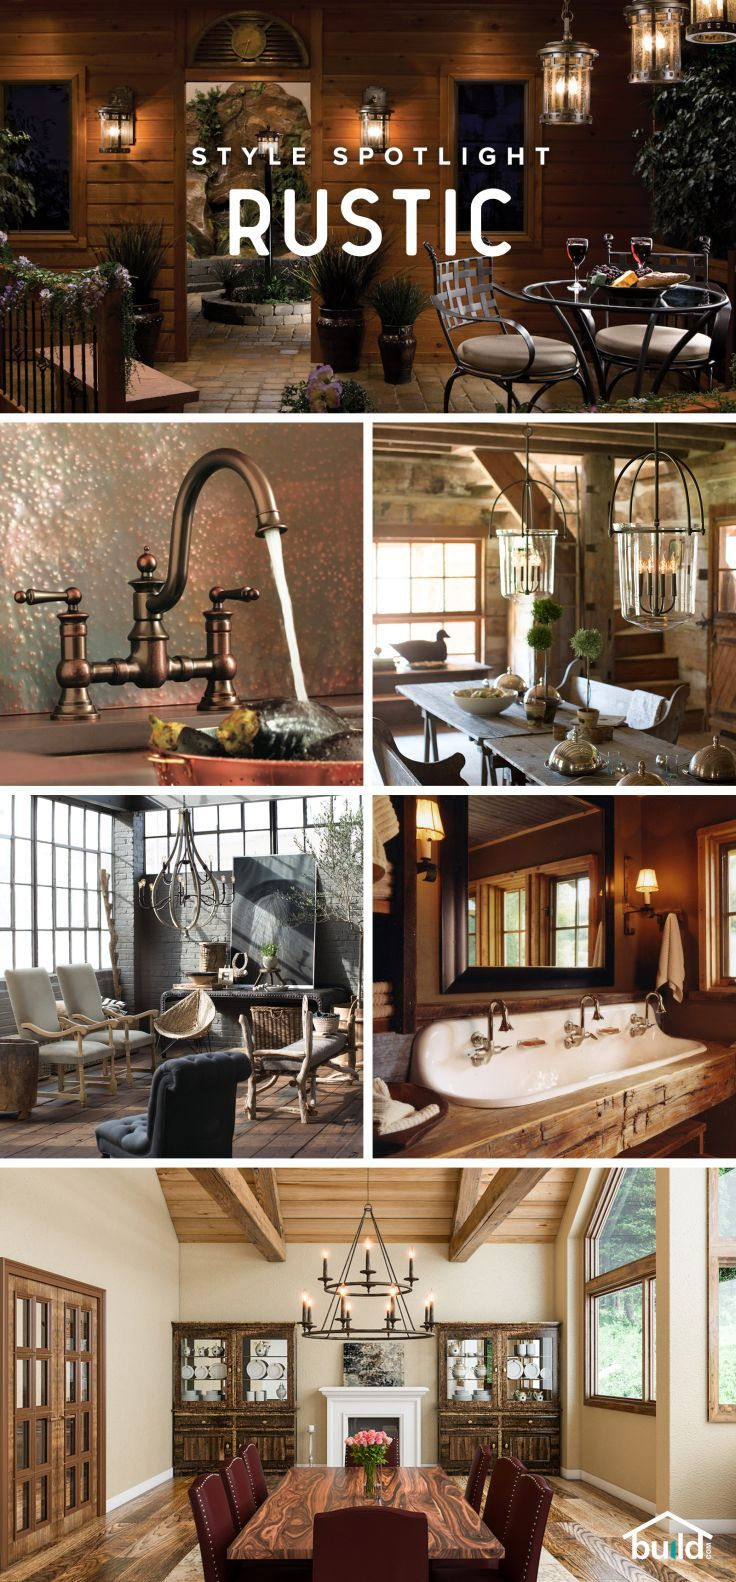 Rustic Design Ideas: 396 Best Vintage/Rustic/Country Home Decorating Ideas